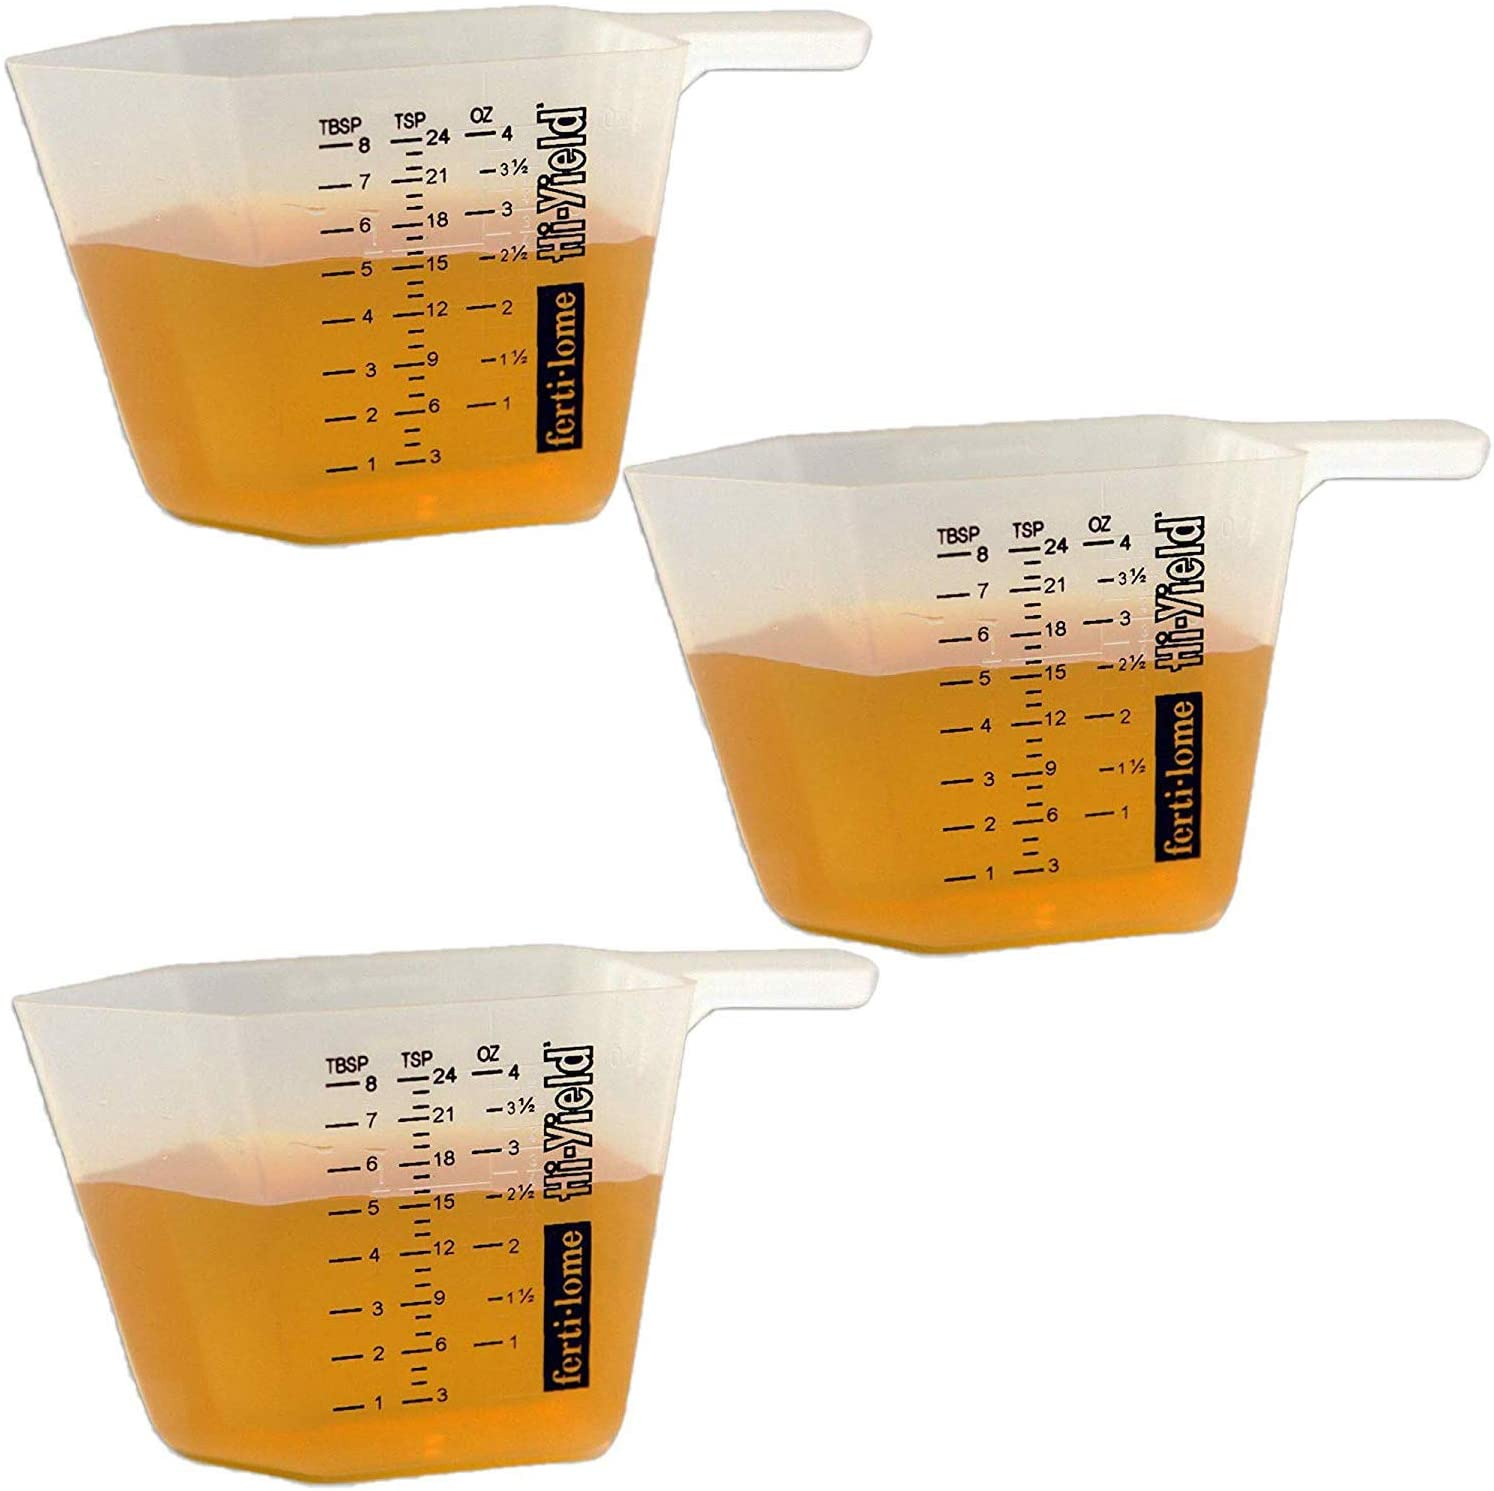 Vpg Fertilome 11008 4-Ounce Measuring Cup (3 Pack) (3)